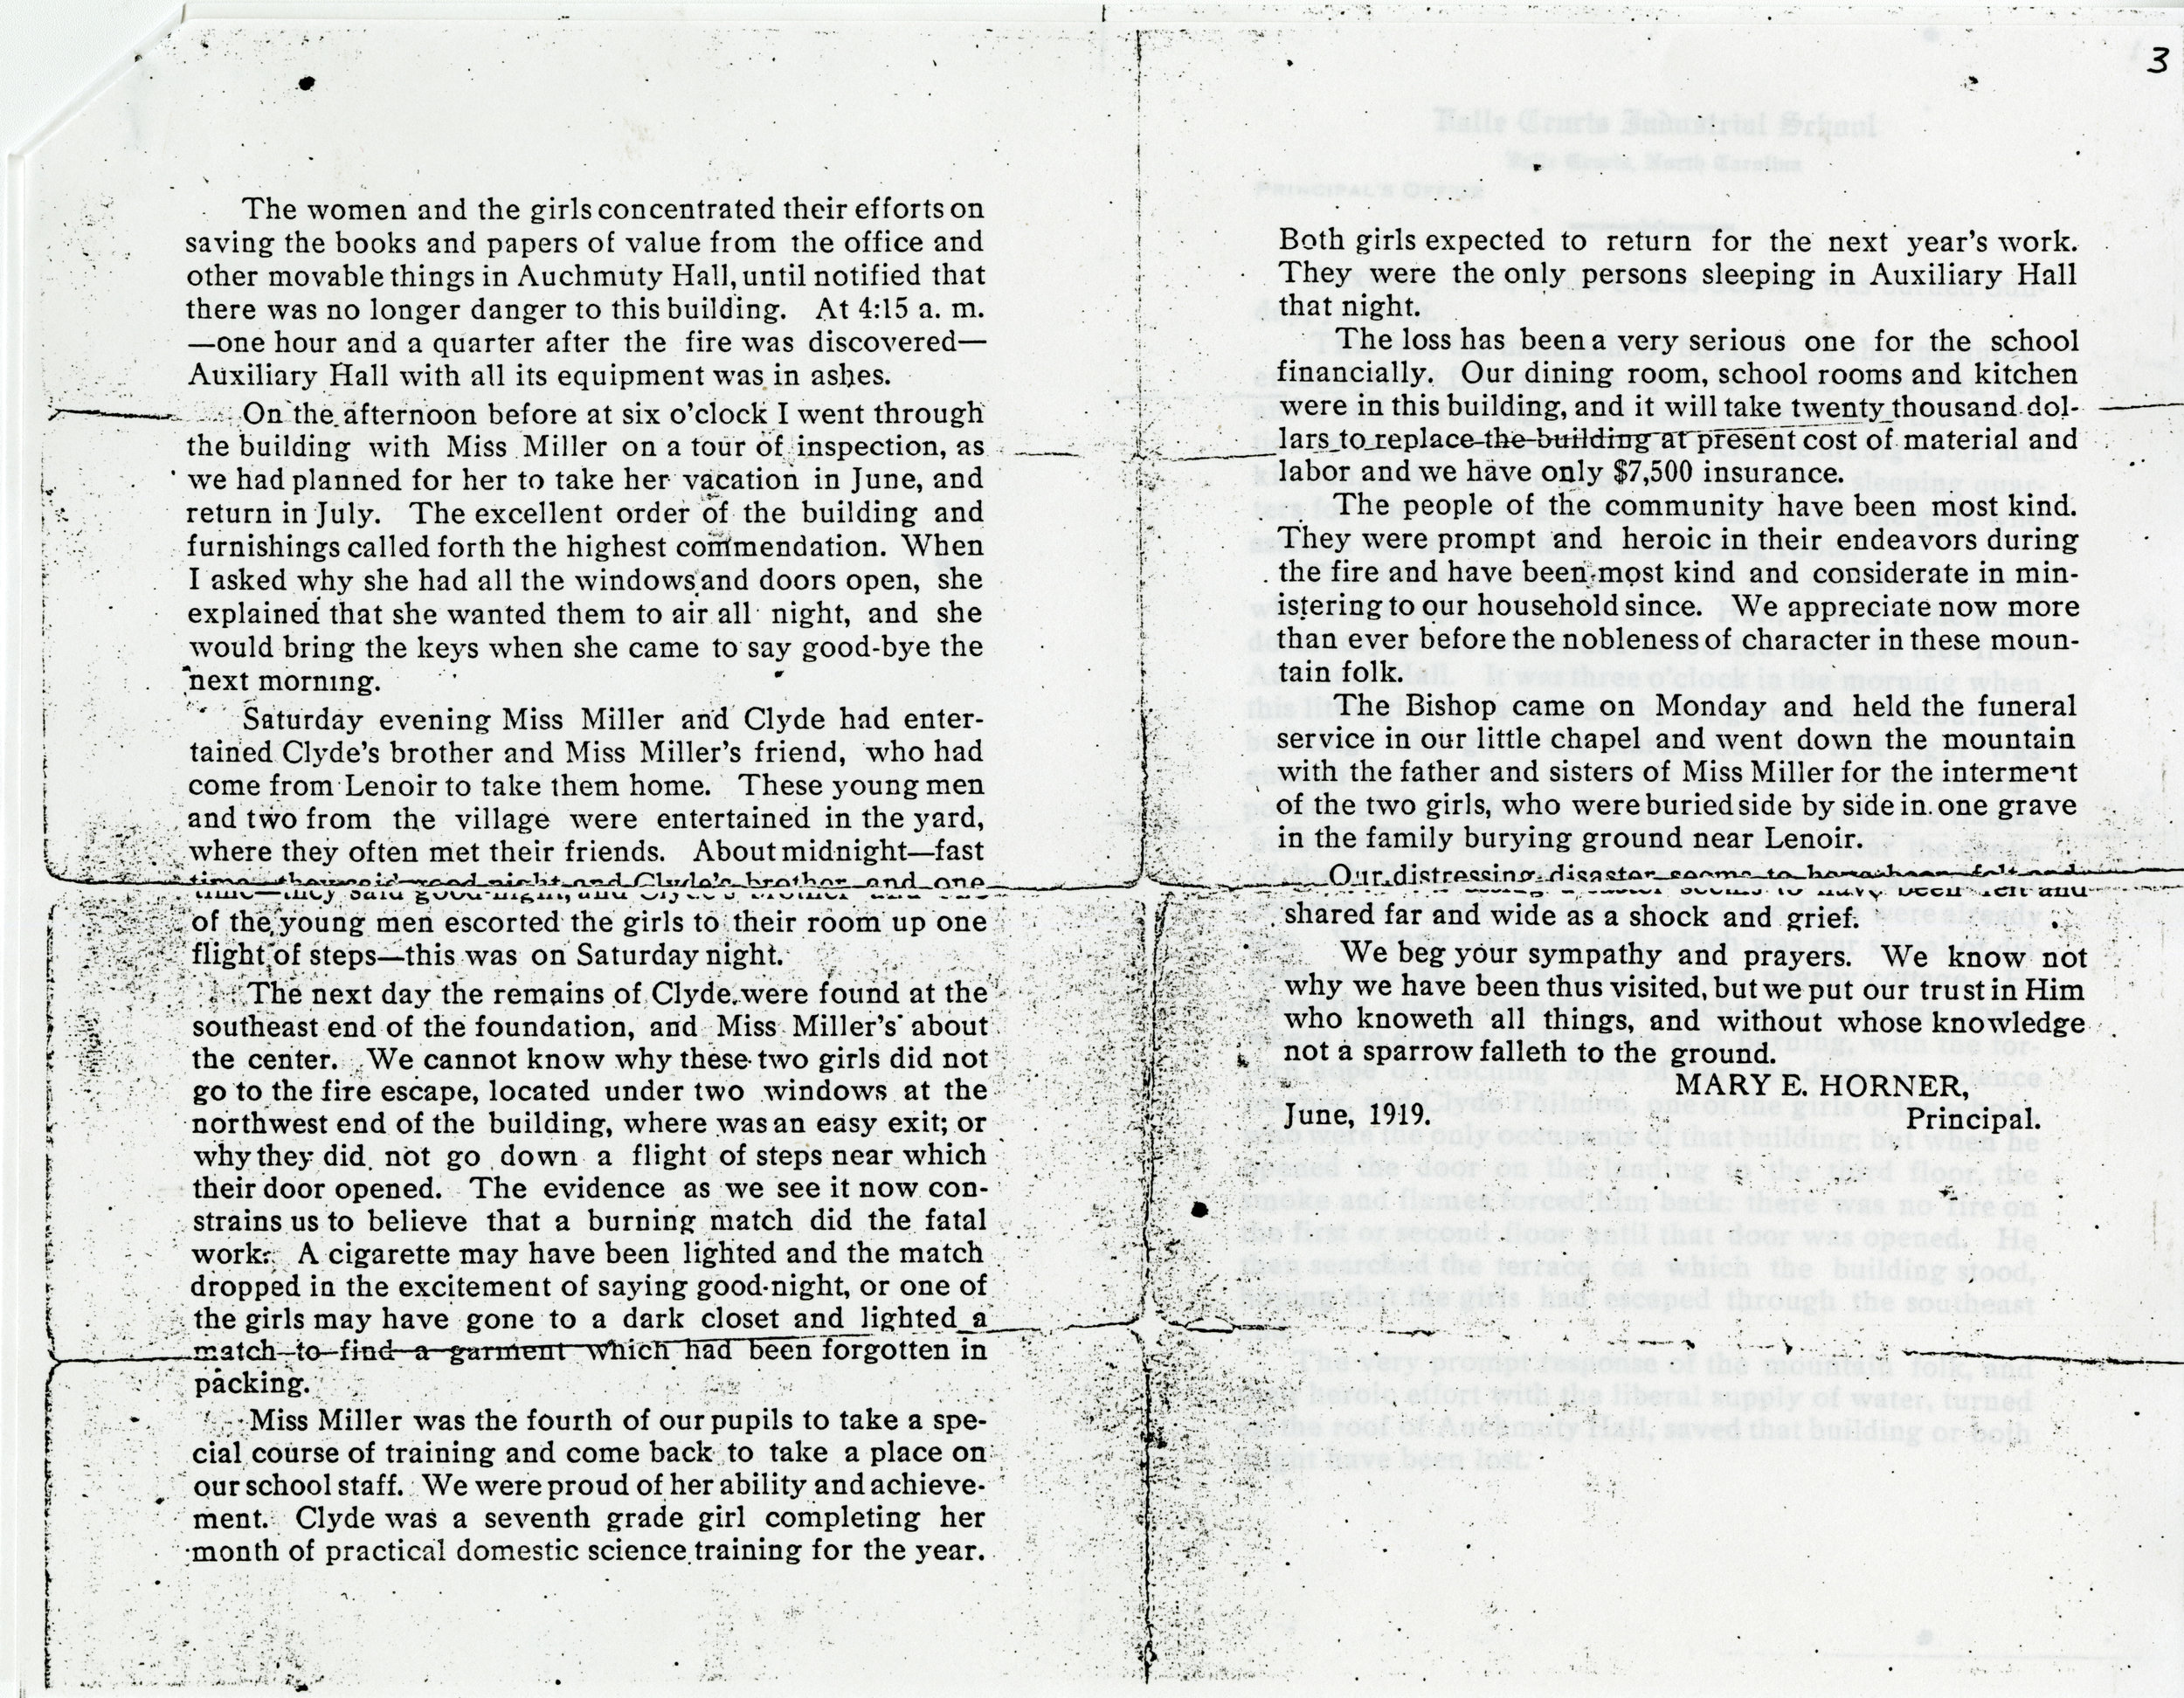 Remainder of typescript of statement by Mary E. Horner, principal of the Valle Crucis Industrial School, describing details of the fire that destroyed Auxiliary Hall. Image from the Valle Crucis Conference Center Collection (Val-Cru-2-011b).